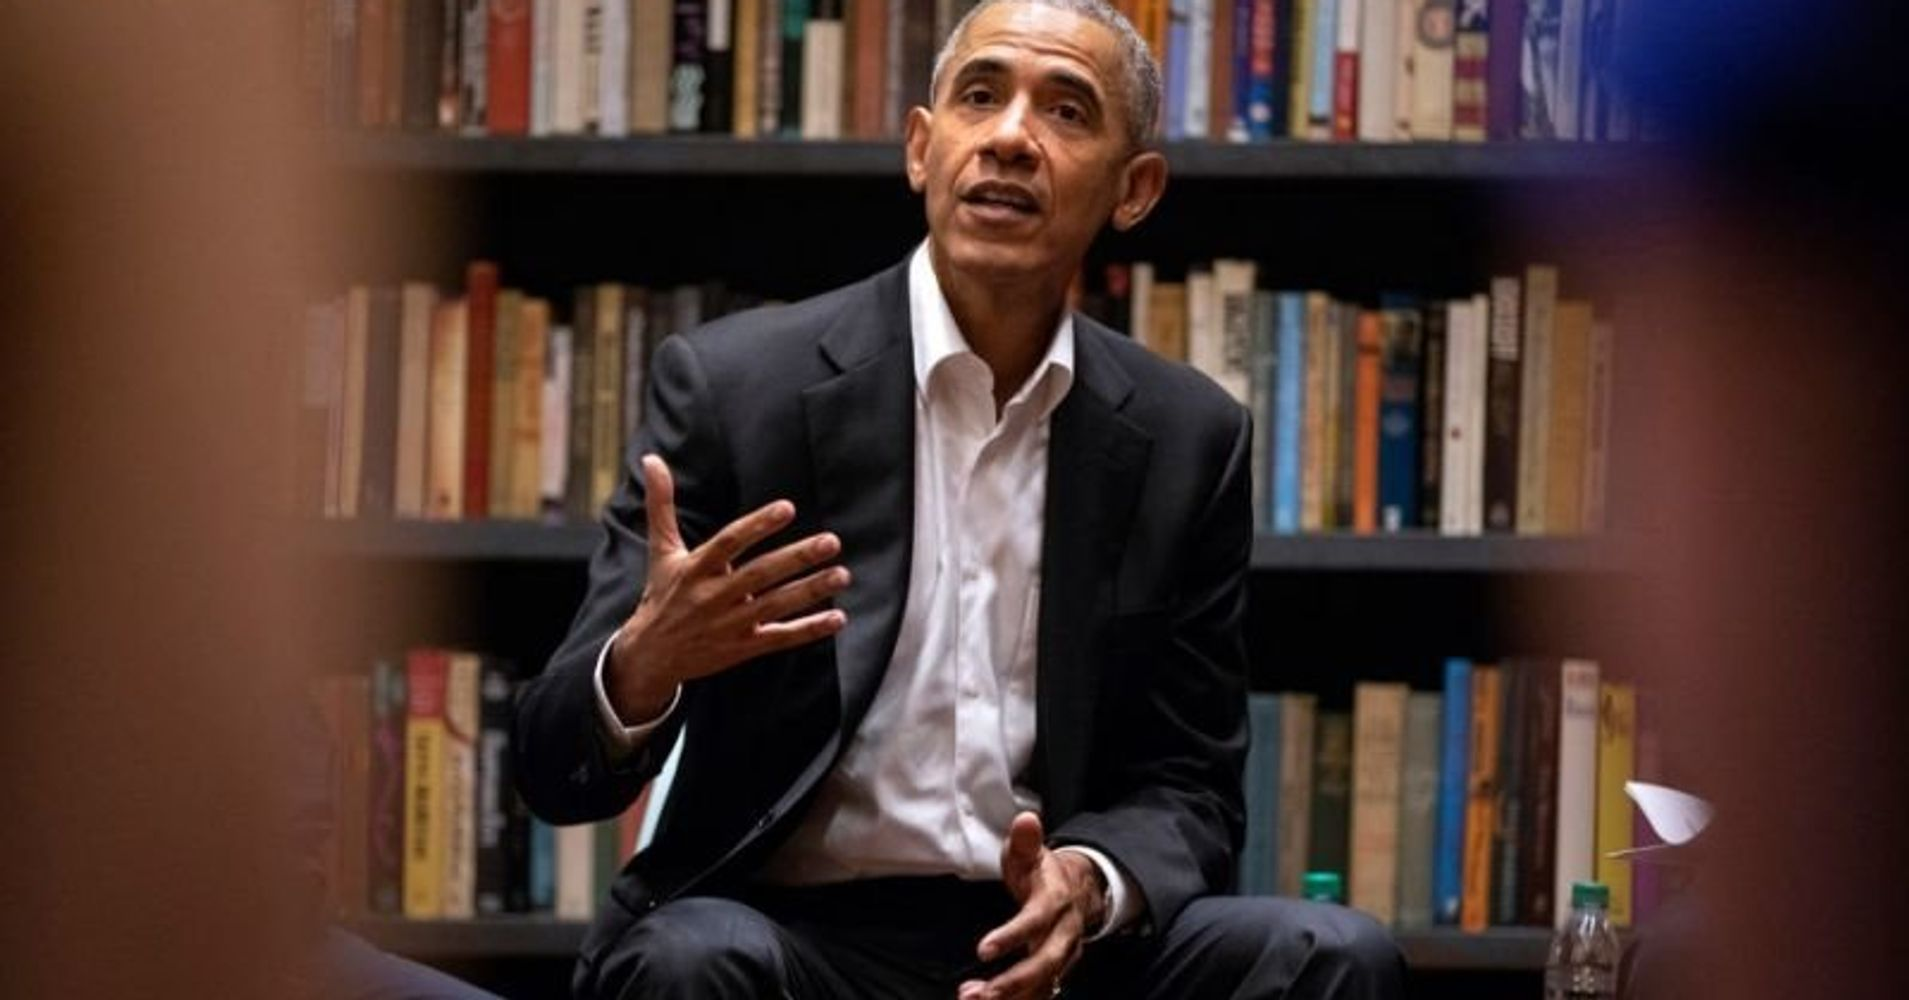 Barack Obama's Annual Summer Reading List Will Inspire You